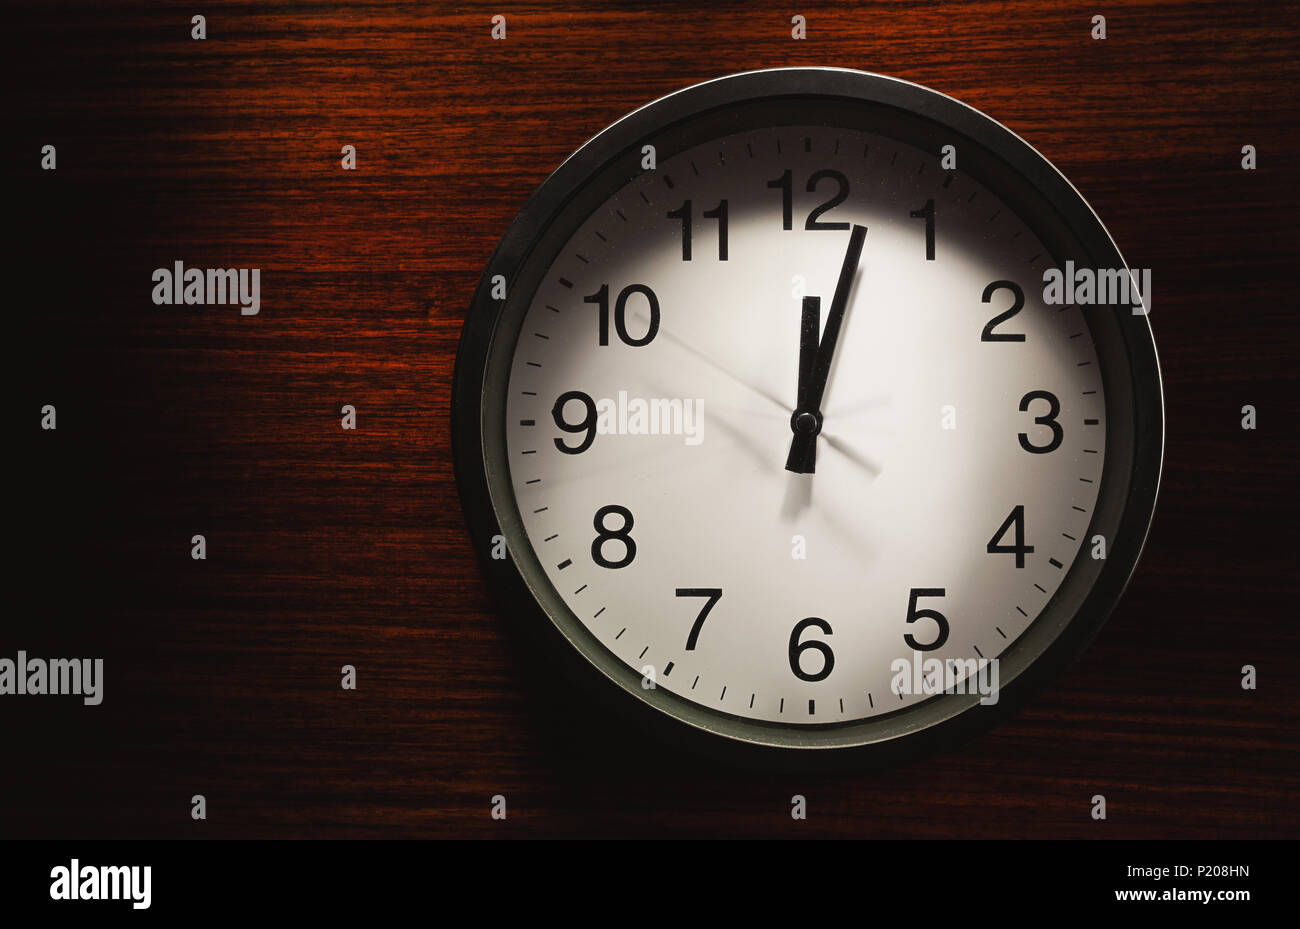 Simple composition, black wall clock on wooden surface showing twelve o'clock. - Stock Image